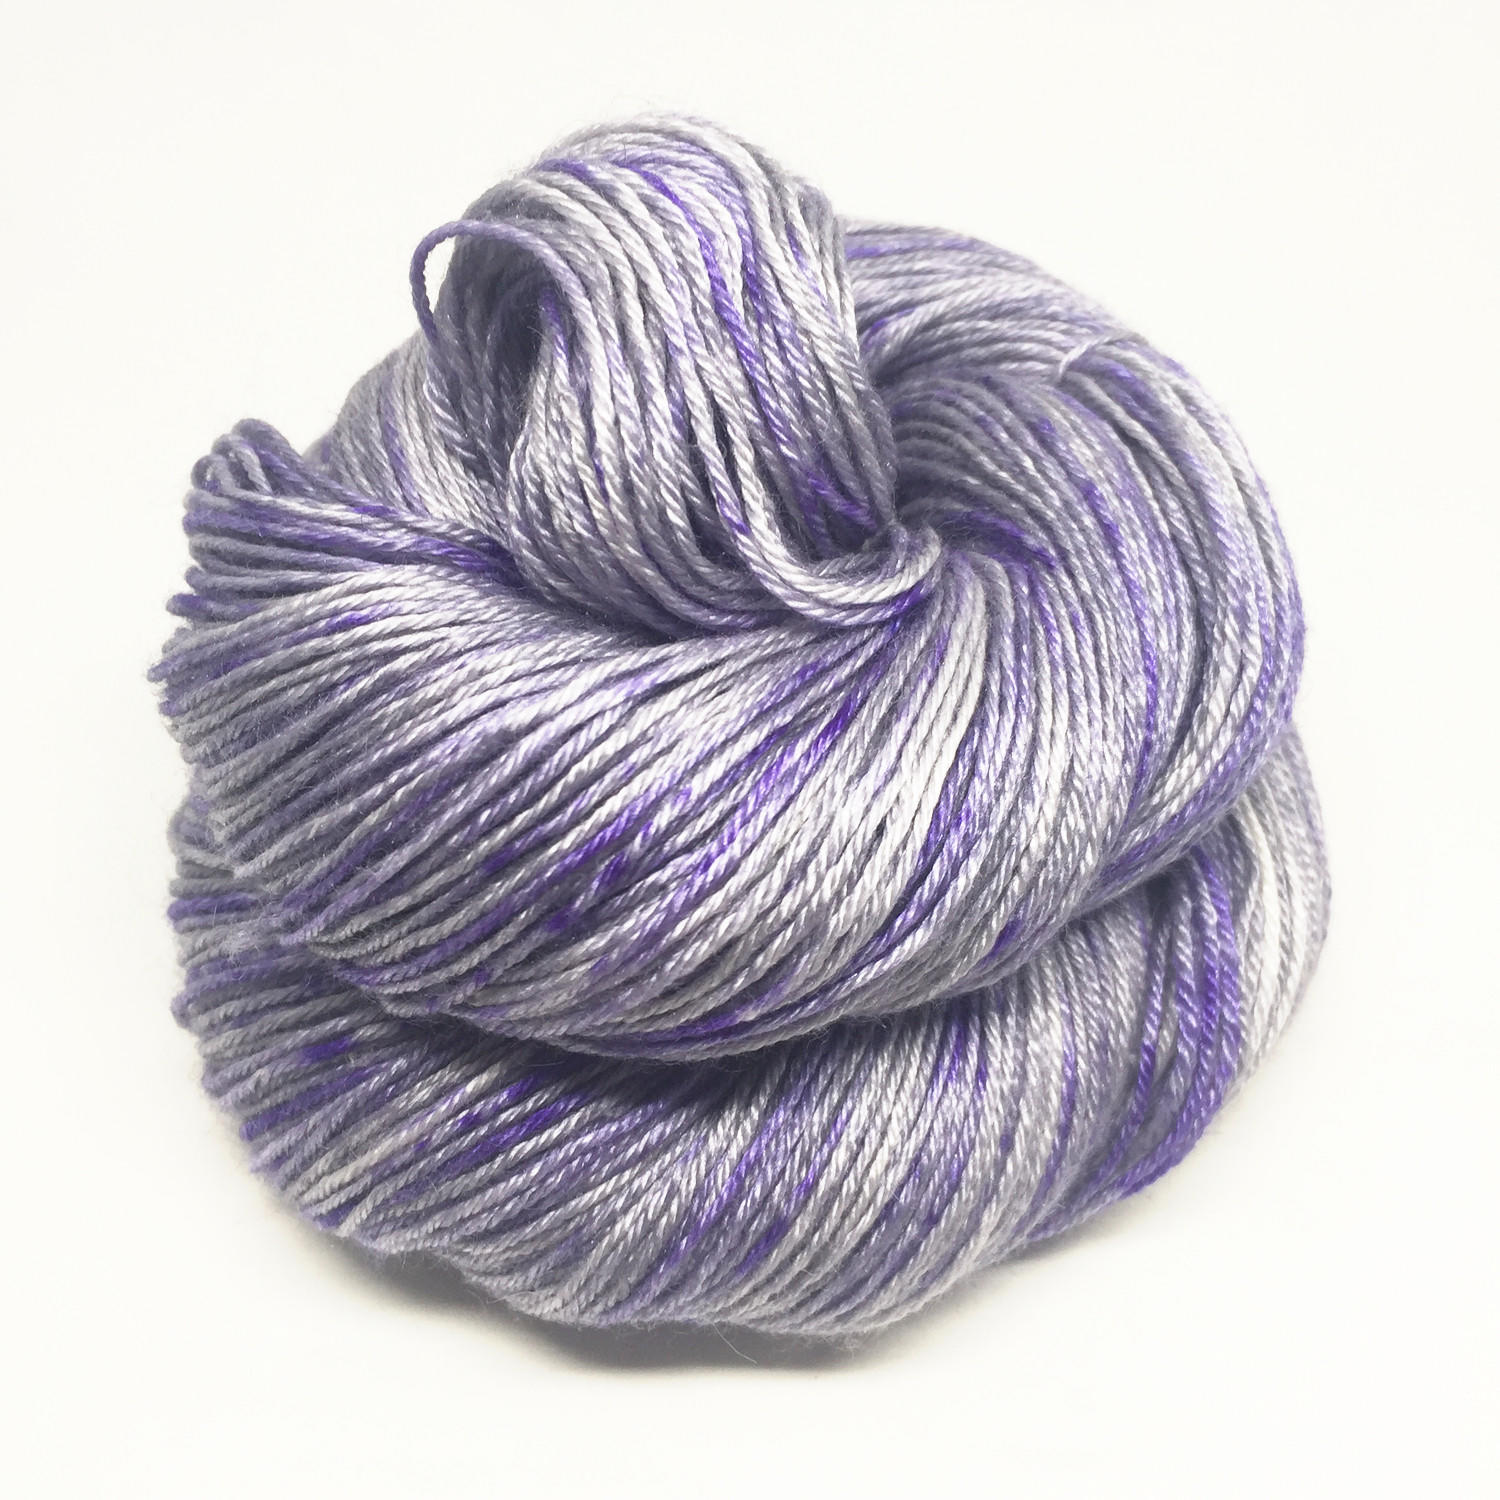 Hand dyed yarn - Cat and Sparrow UK